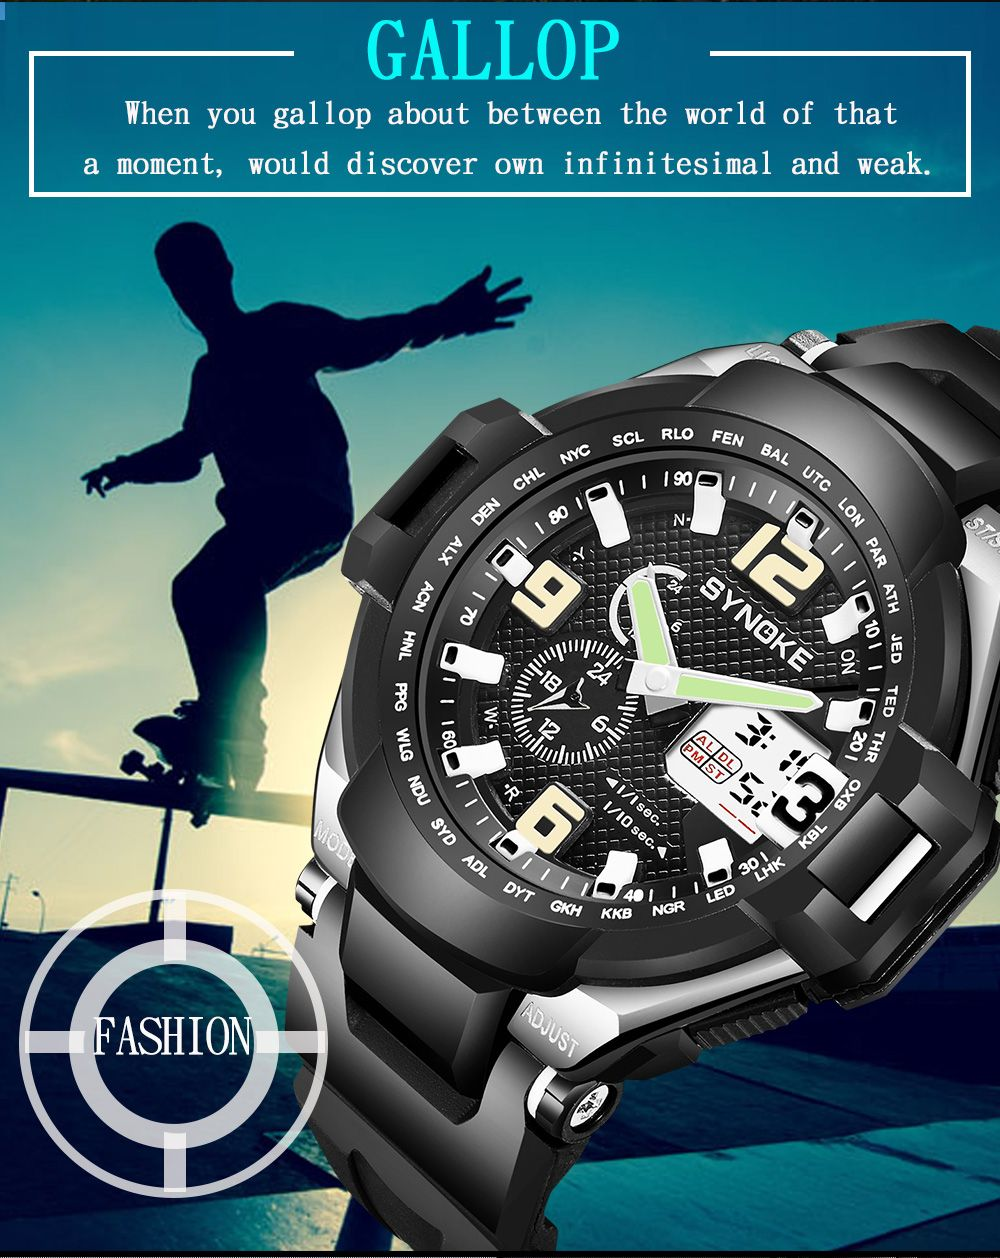 SYNOKE 67606 Outdoor Multifunctionable Student Electronic Male Watch